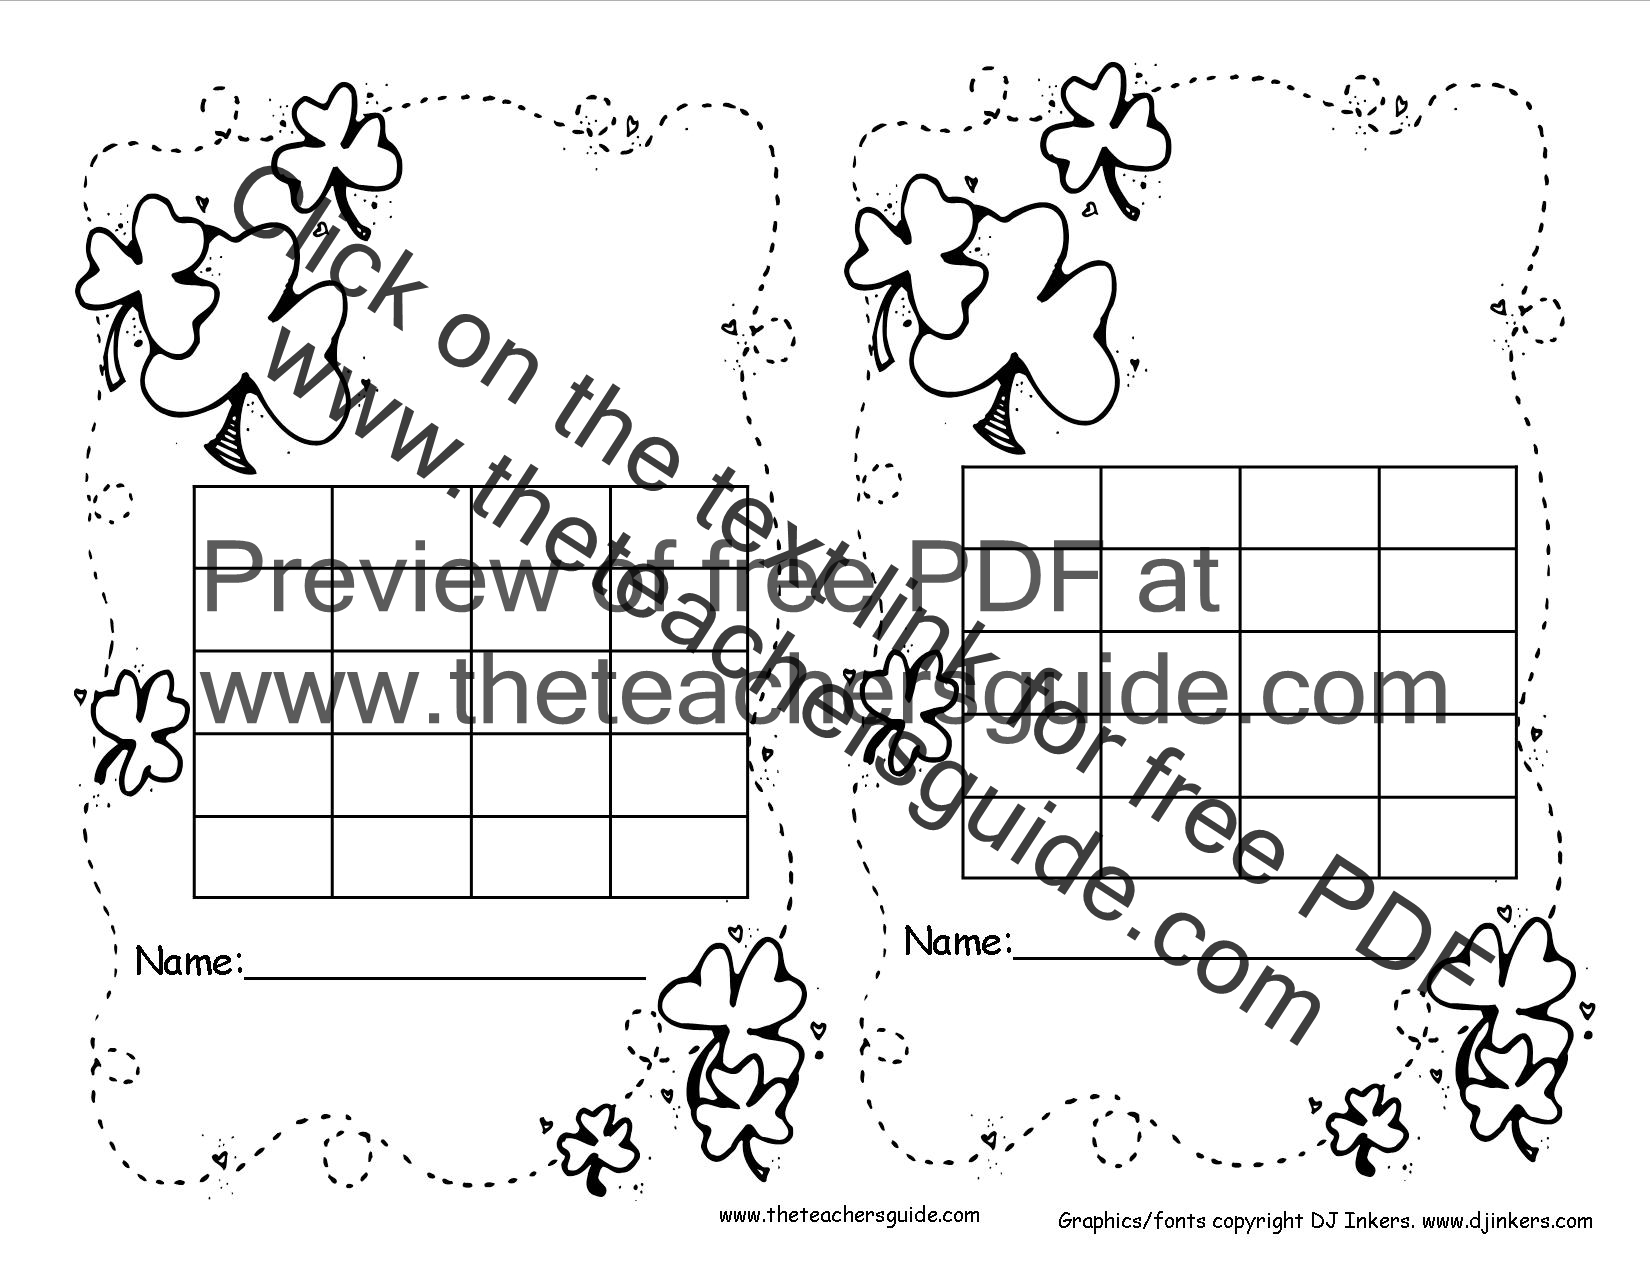 graphic regarding Free Printable Incentive Charts known as No cost Printable Profit and Incentive Charts